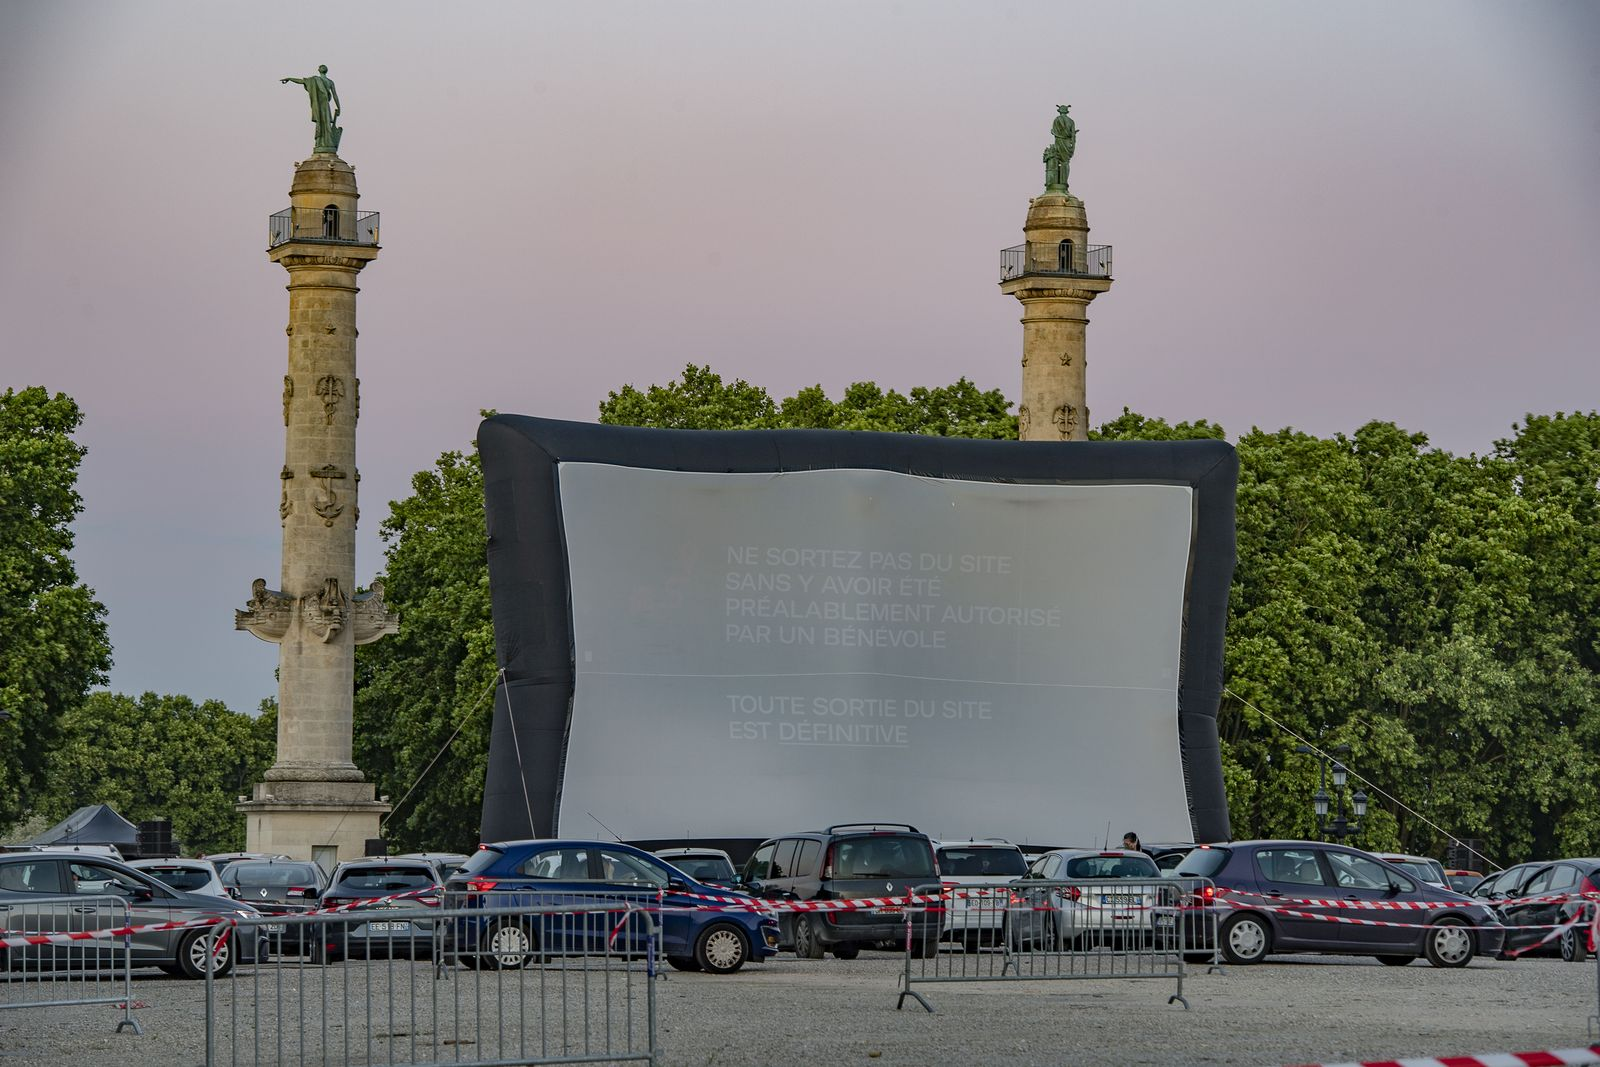 Drive-In Festival amid coronavirus pandemic in France, Bordeaux - 16 May 2020